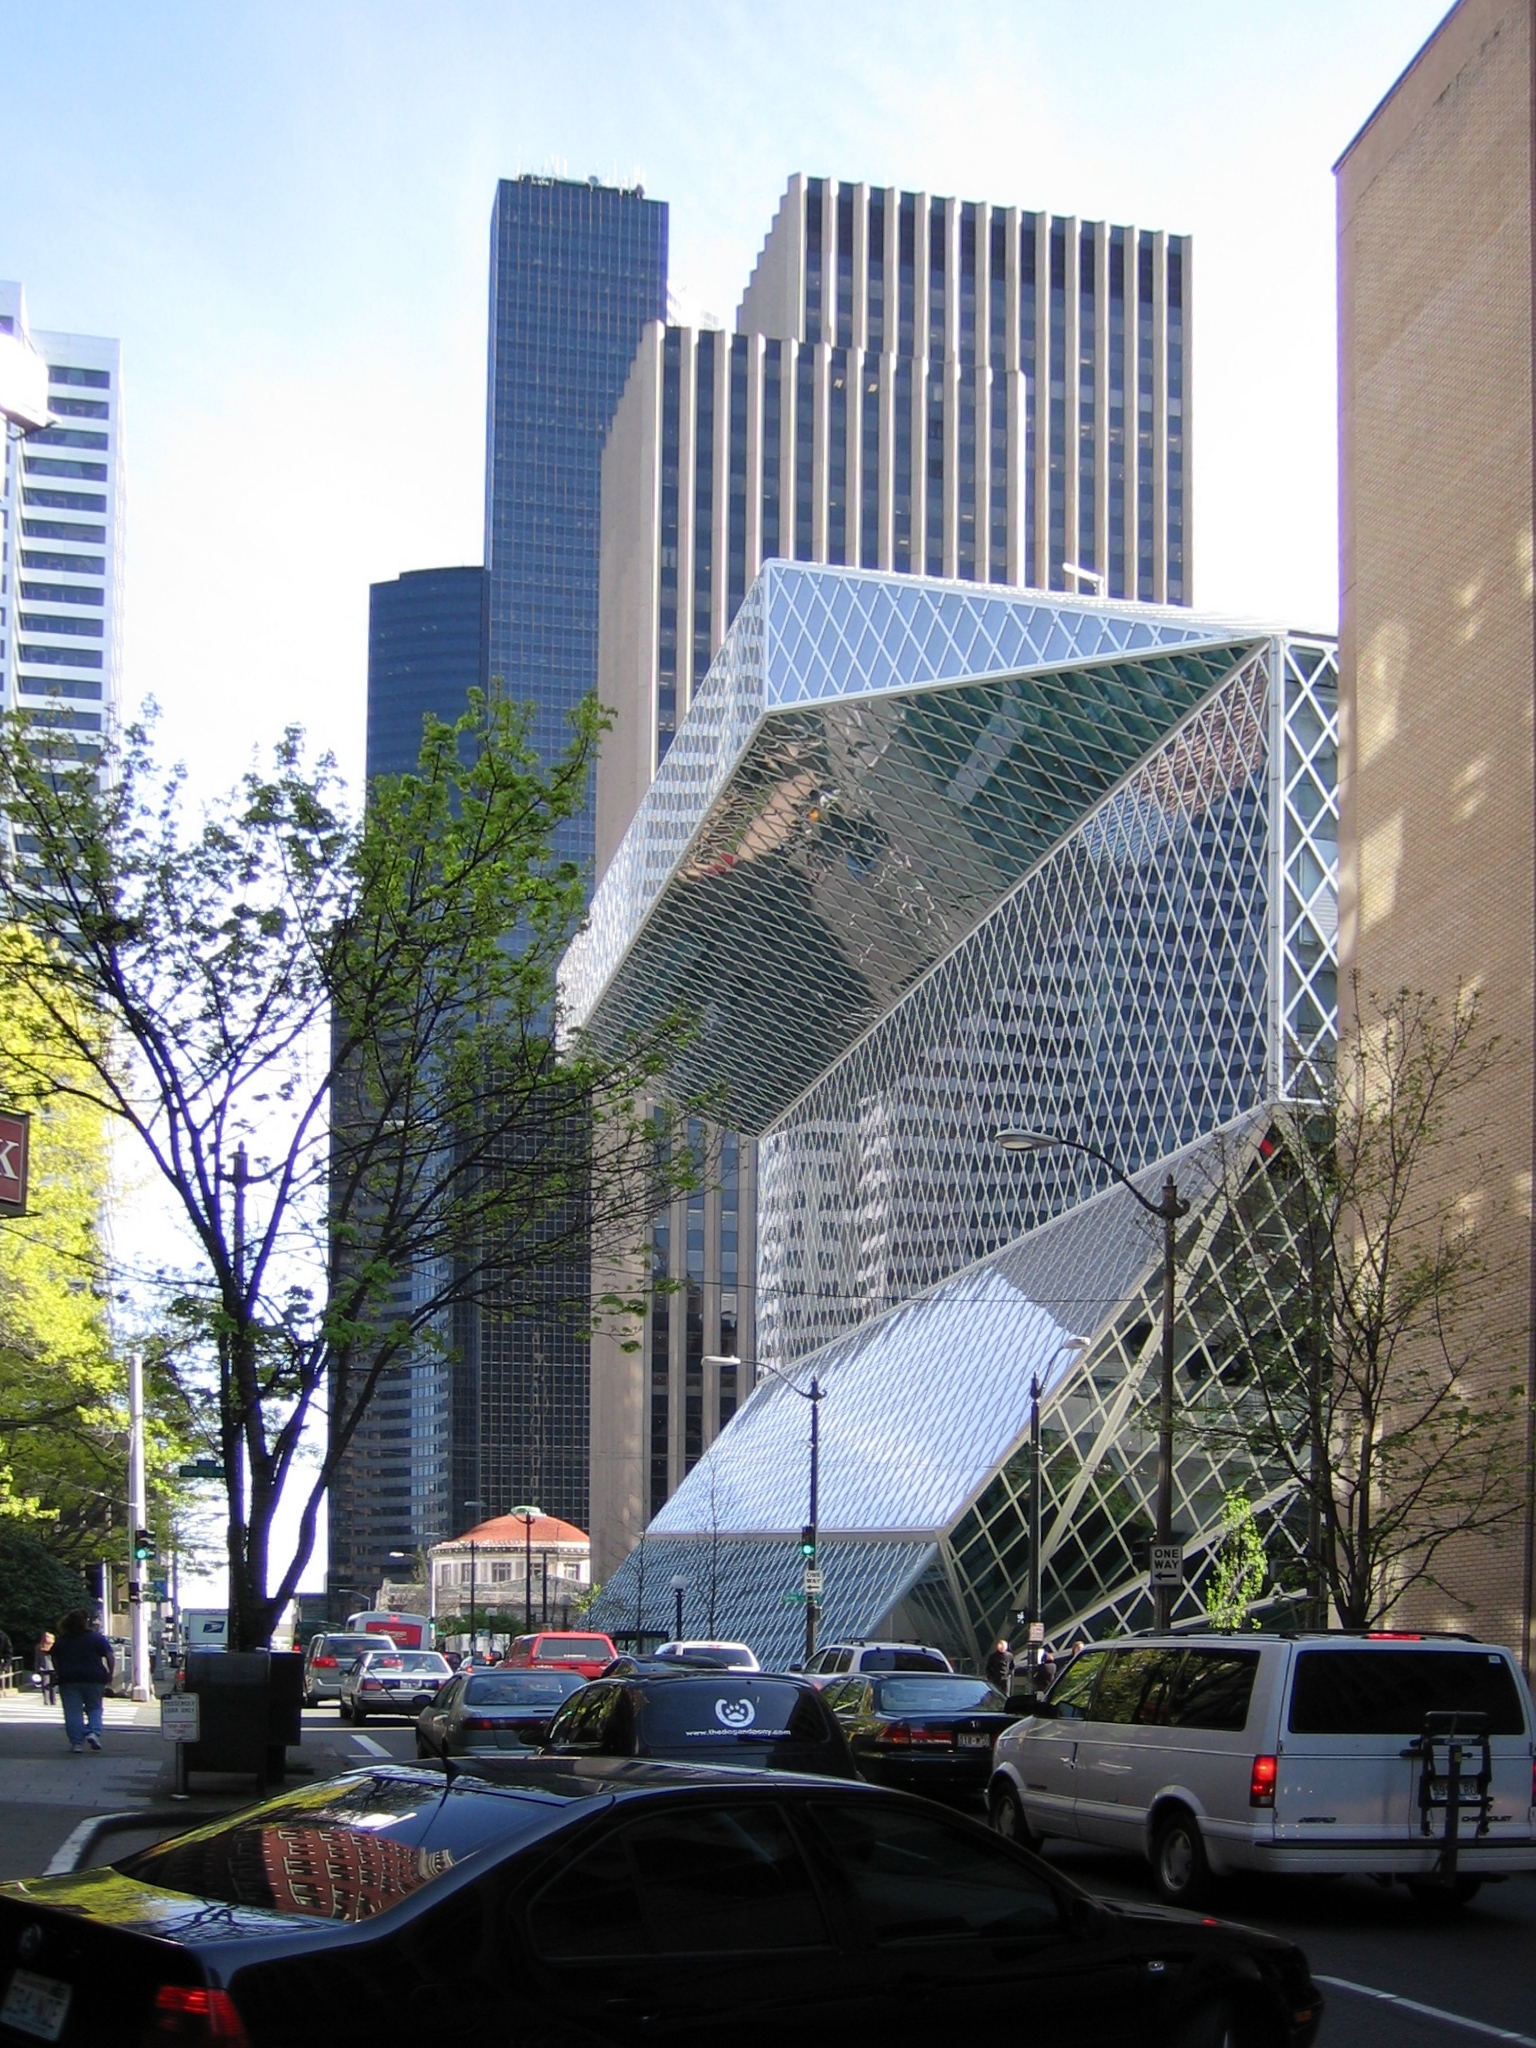 file seattle central library by architect rem koolhaas view from 5th wikipedia. Black Bedroom Furniture Sets. Home Design Ideas